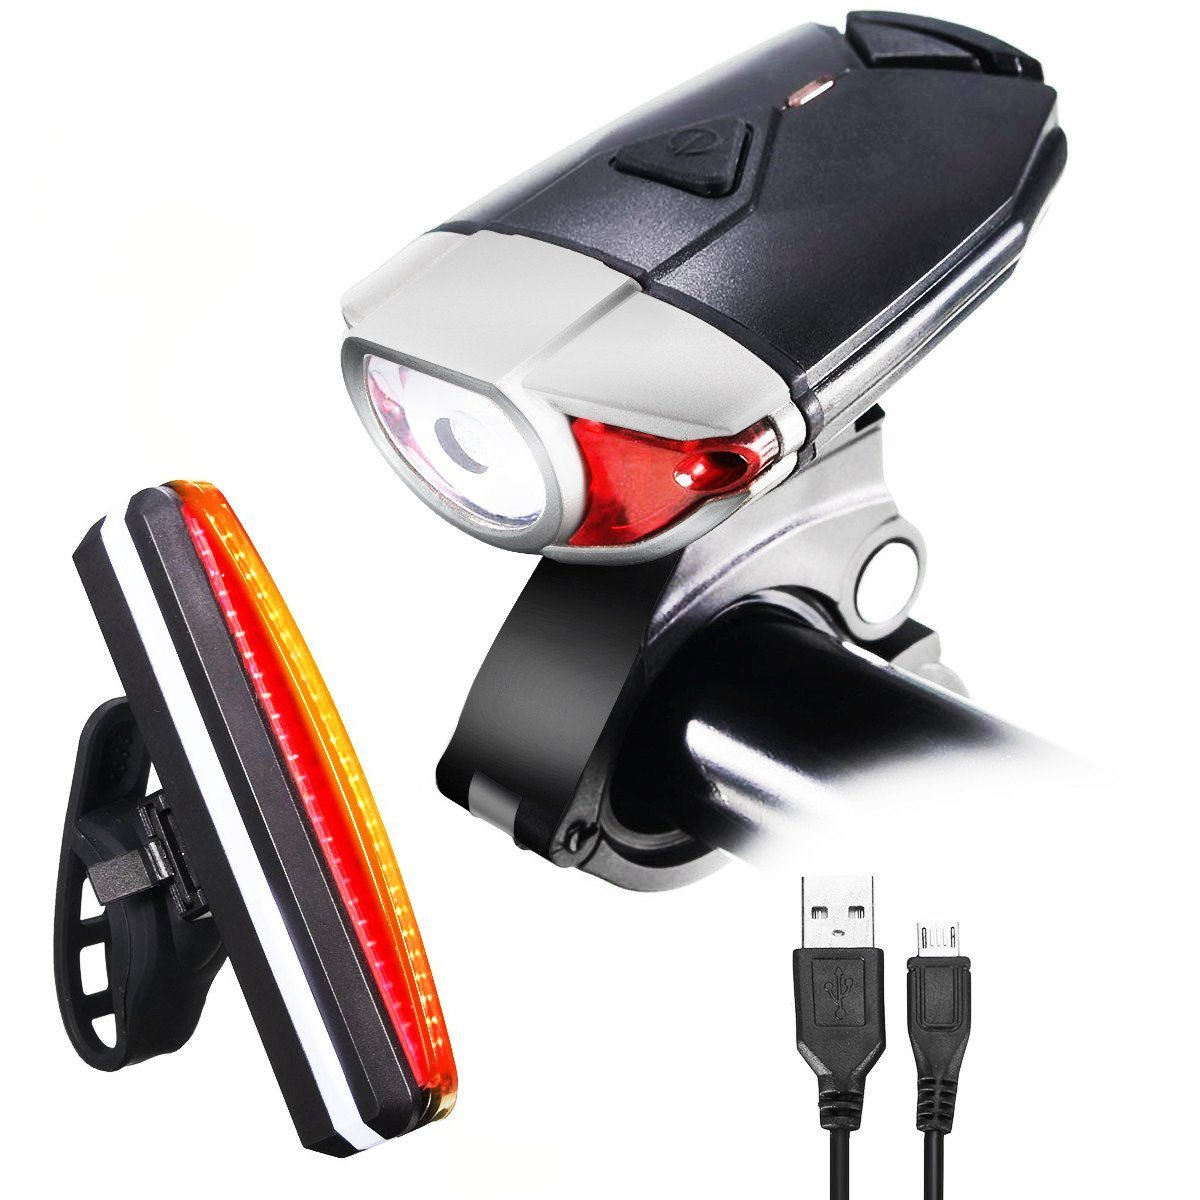 CAMTOA Bicycle Lights, Rechargeable LED Front and Rear Bike Light Set – Super Bright 250 LM LED Bicycle Light Set with 3 Light Mode Options – 2 X USB Cable